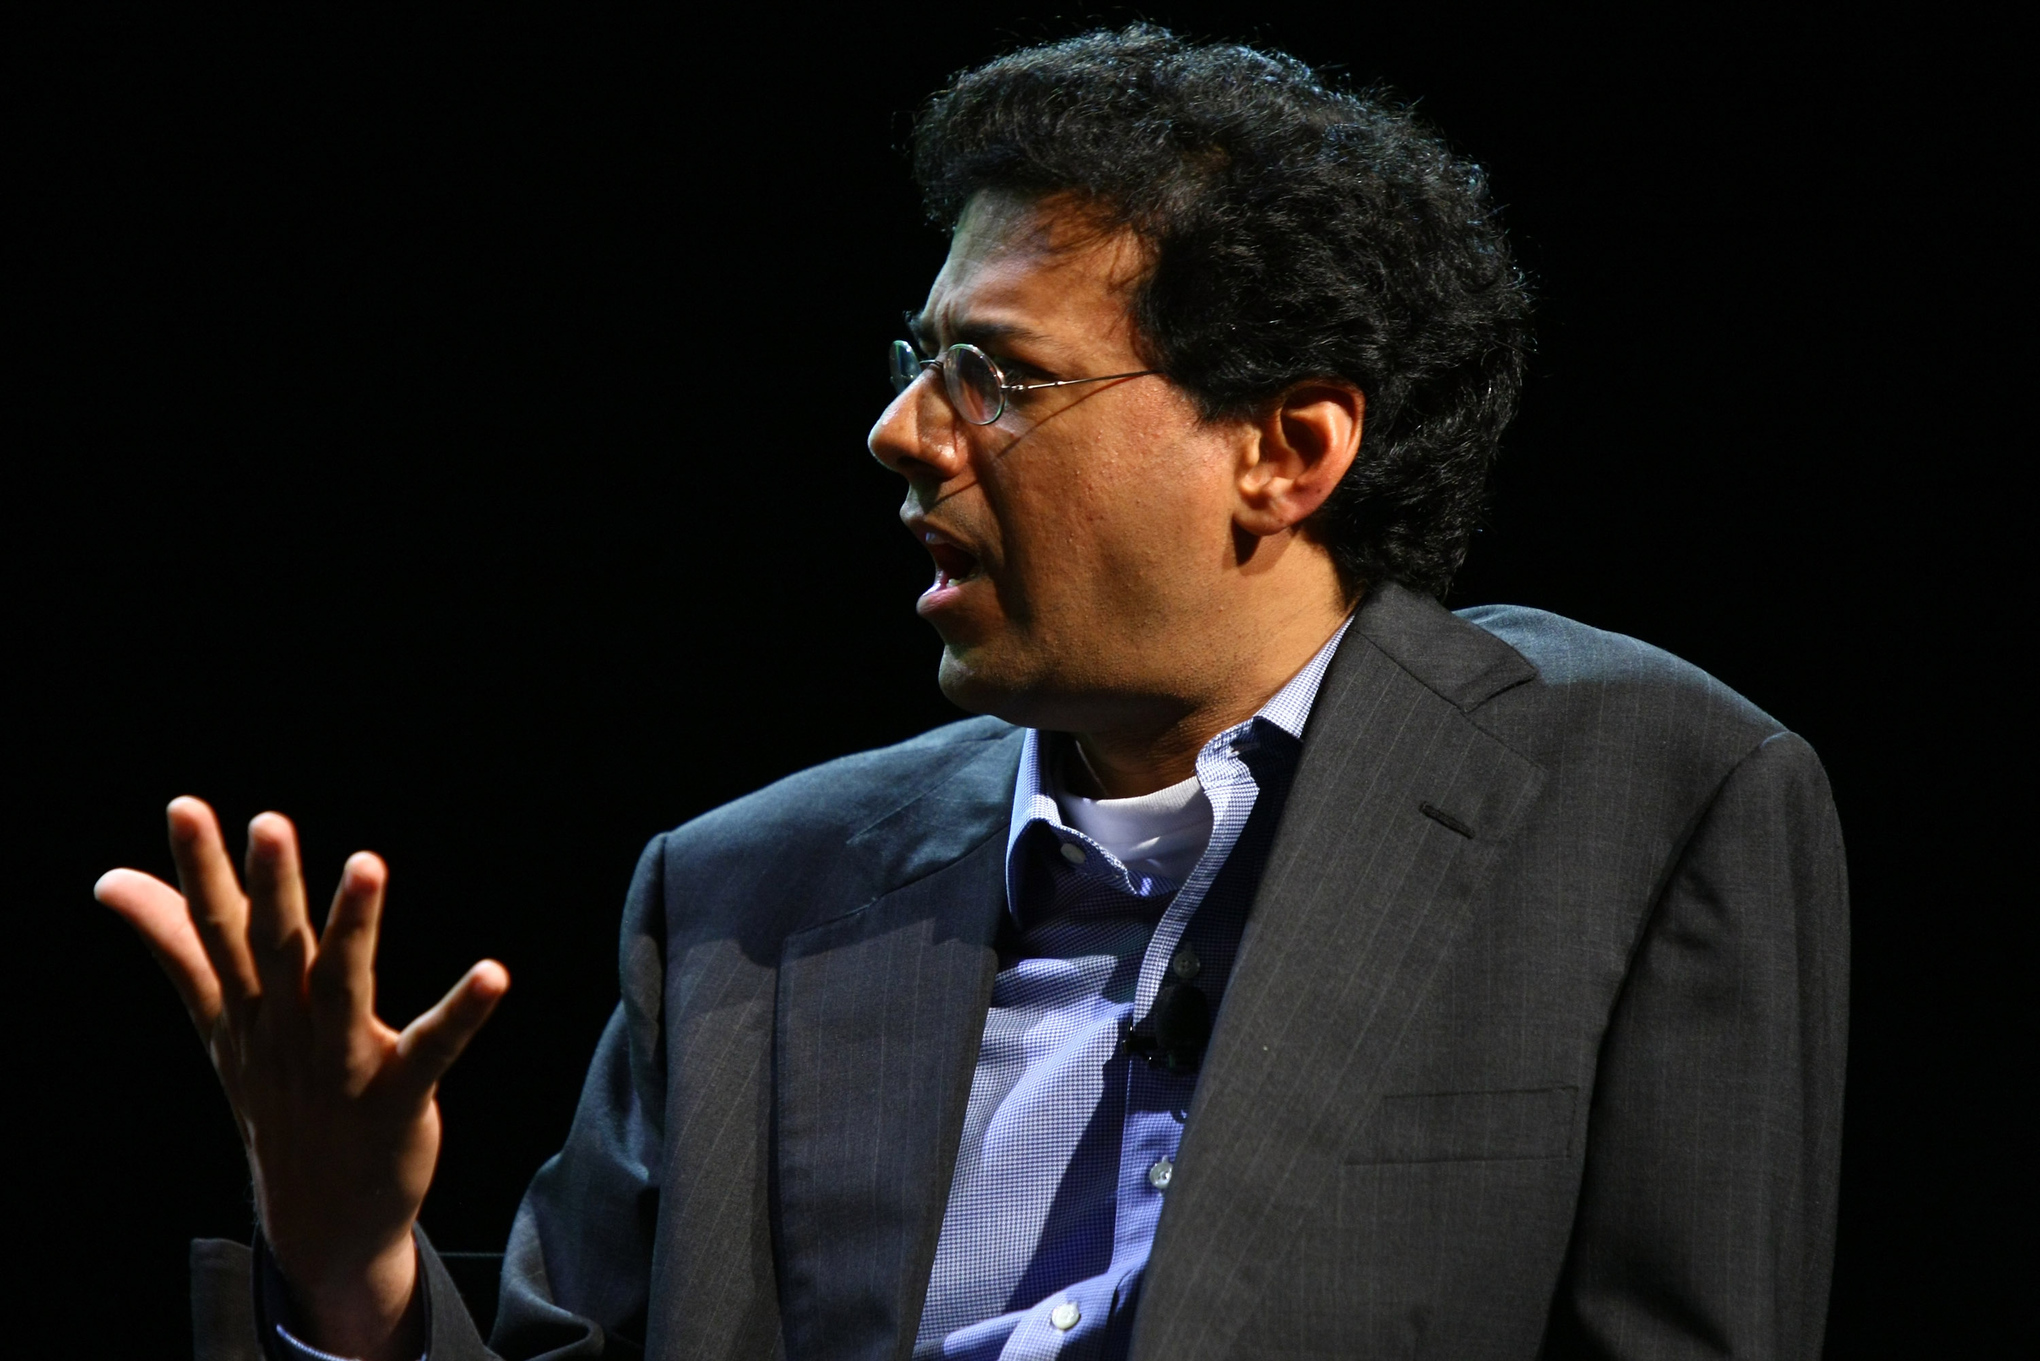 Today in Obamacare: Atul Gawande explains why Obamacare repeal is terrible for science